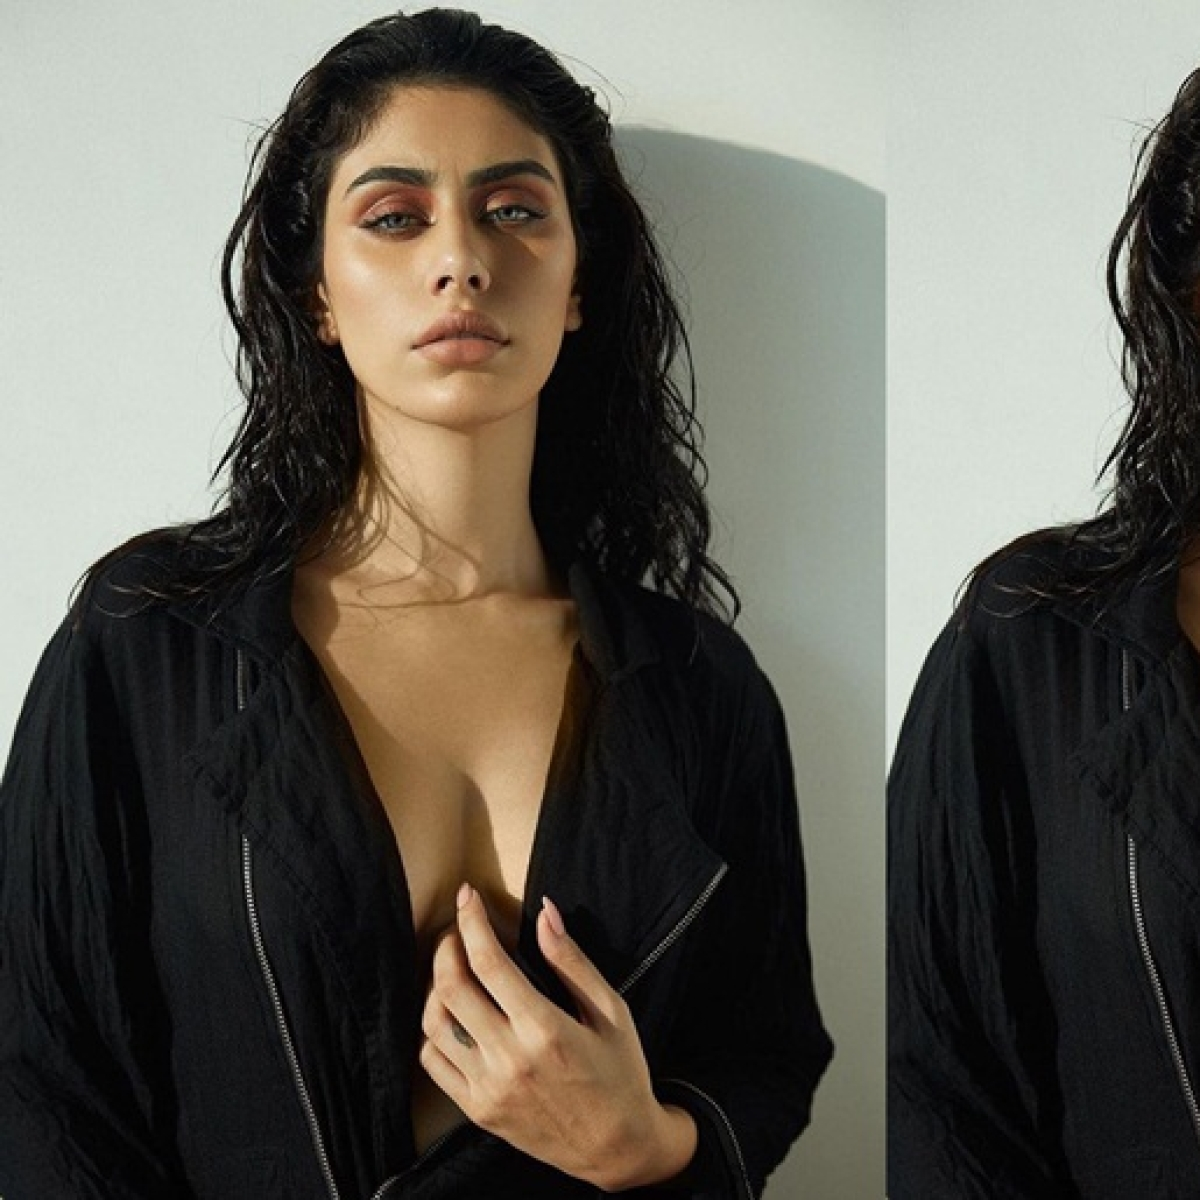 'Loveyatri' actress Warina Hussain's sexy braless picture has the internet ogling